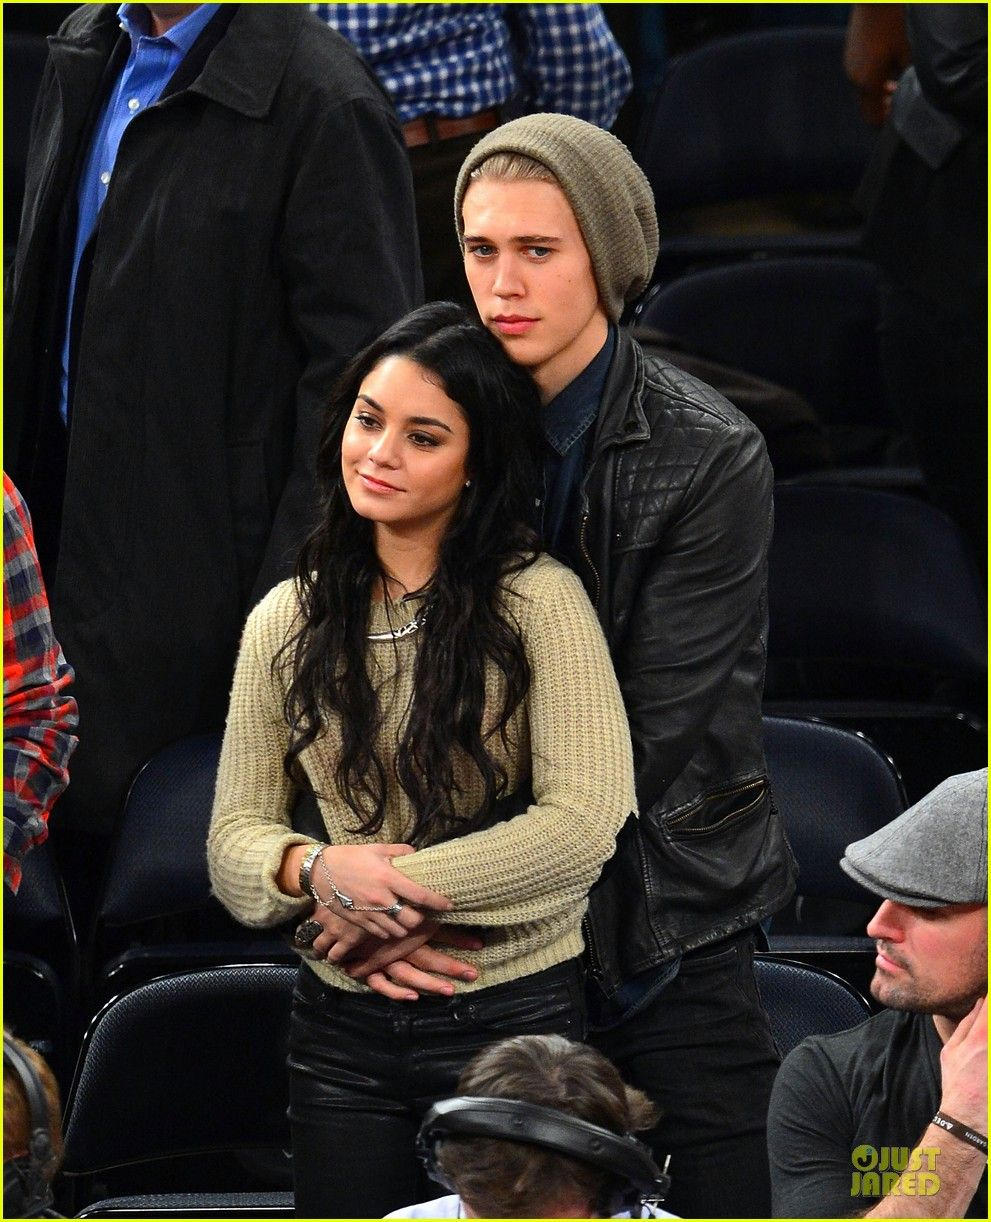 Vanessa talks about Austin Butler